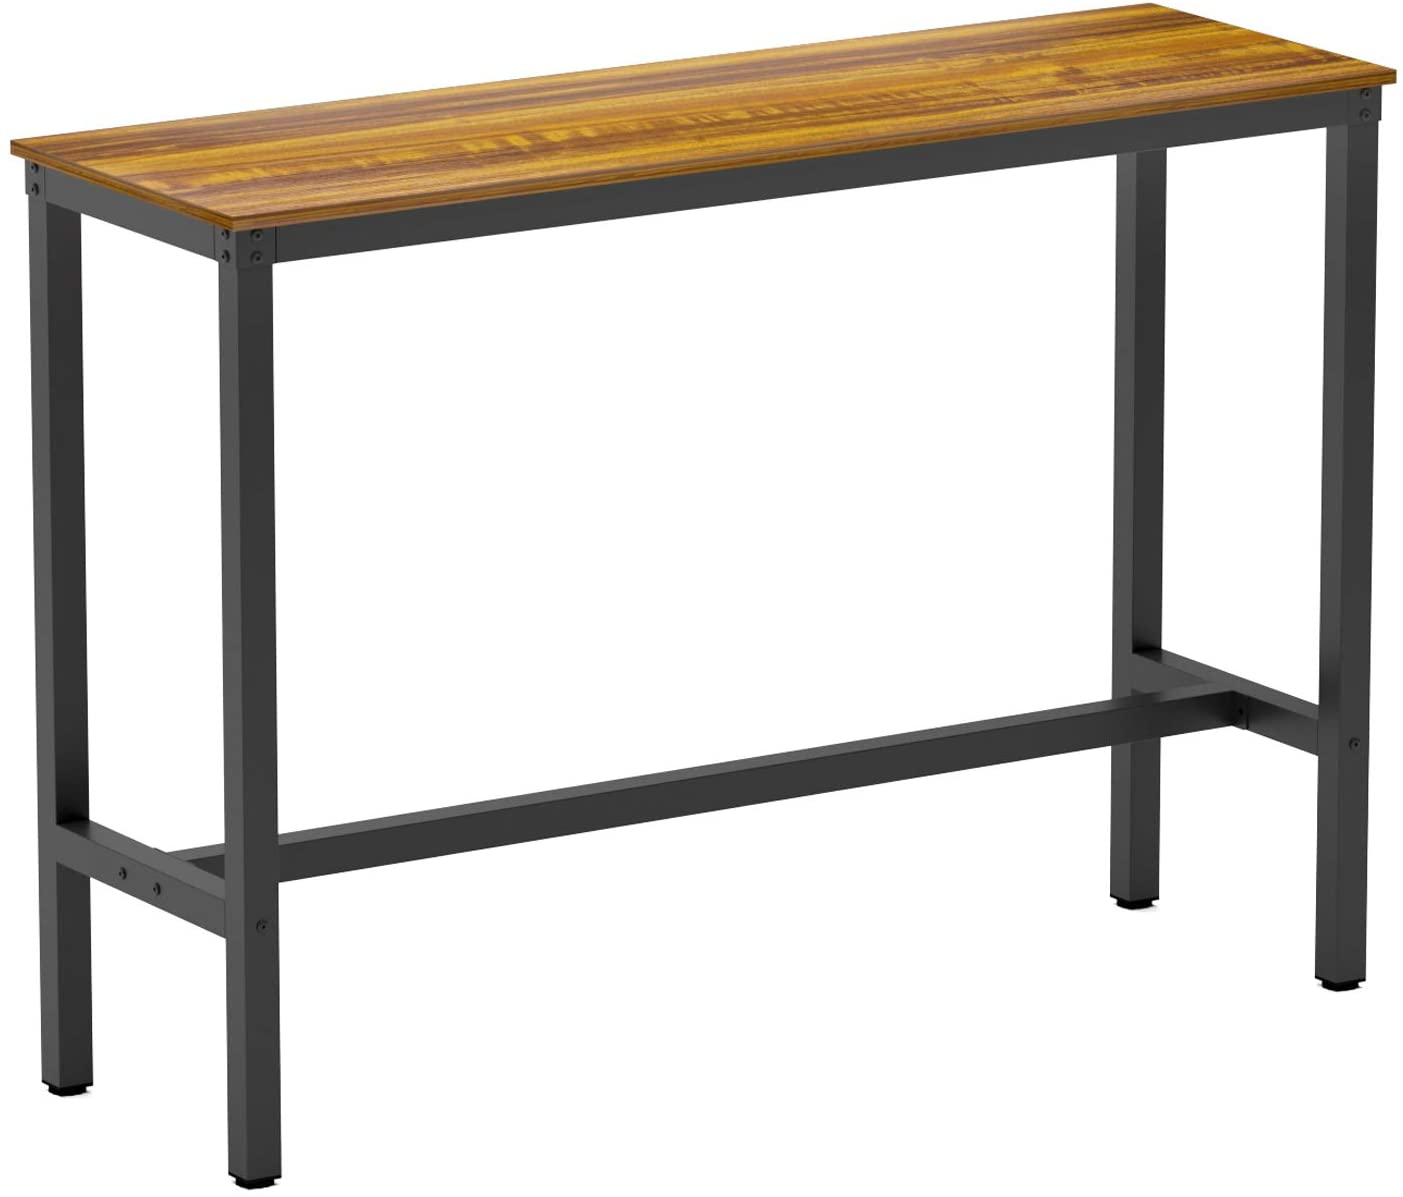 Teraves Bar Table with Solid Metal Frame,Counter Height Dining Table  Kitchen Bar Table for Dining Room,Living Room 9.9